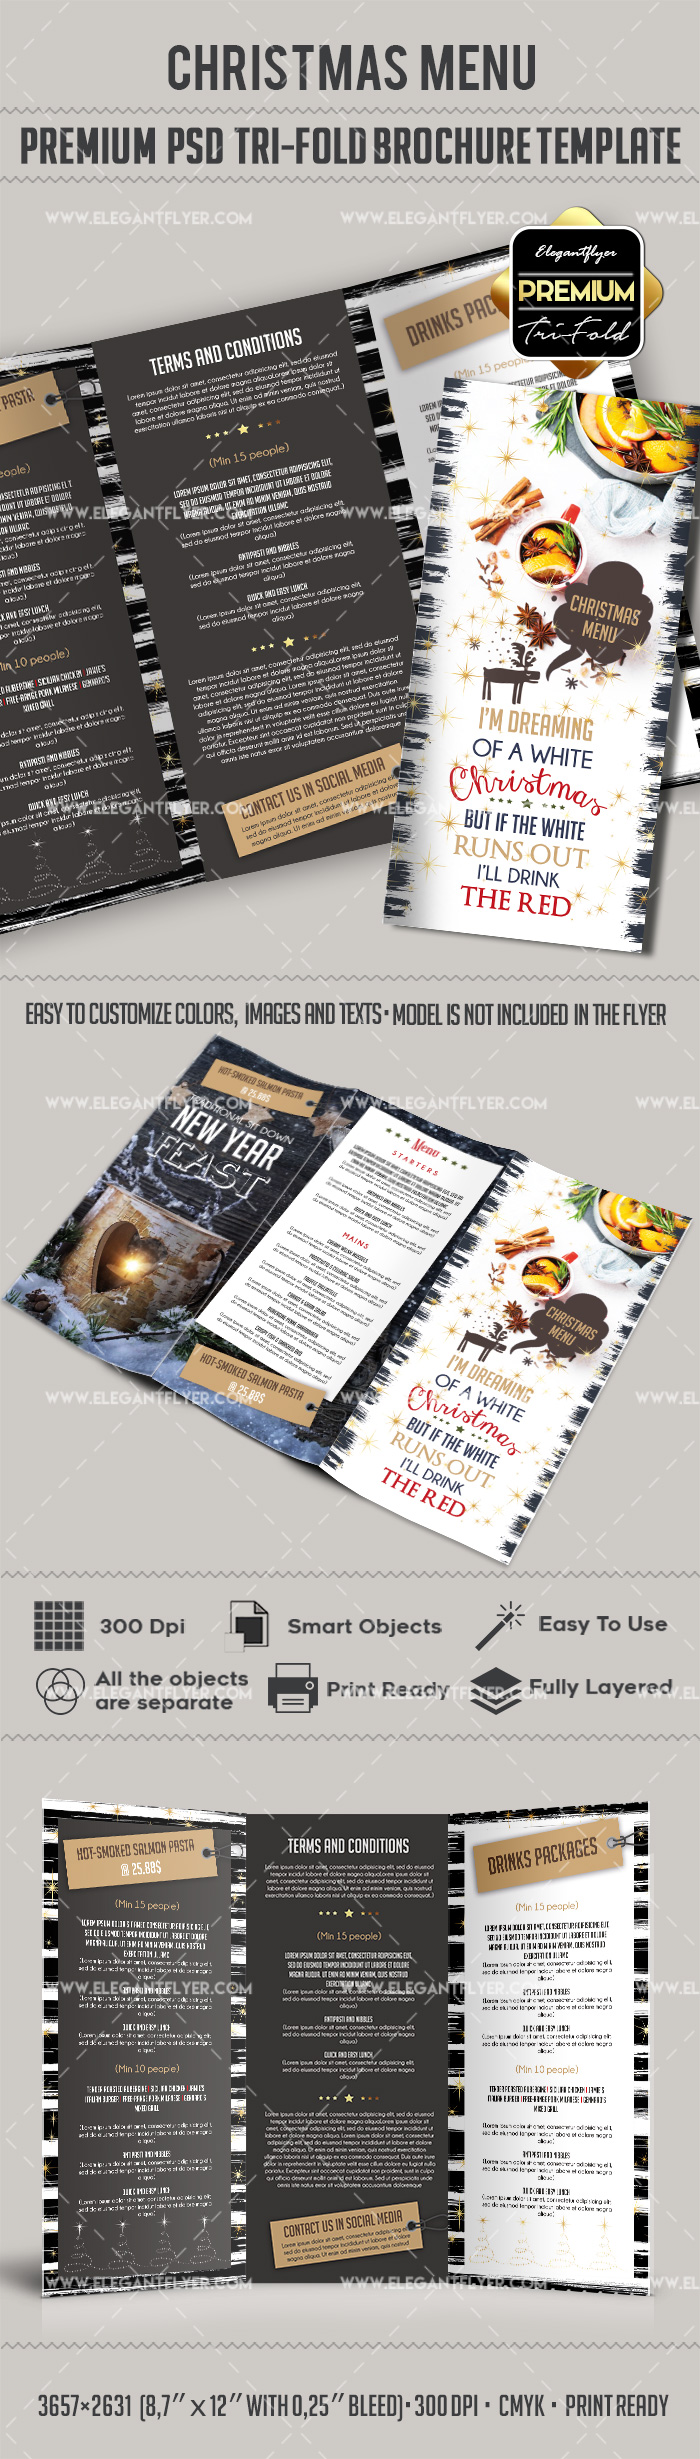 PSD Brochure for Christmas Brunch